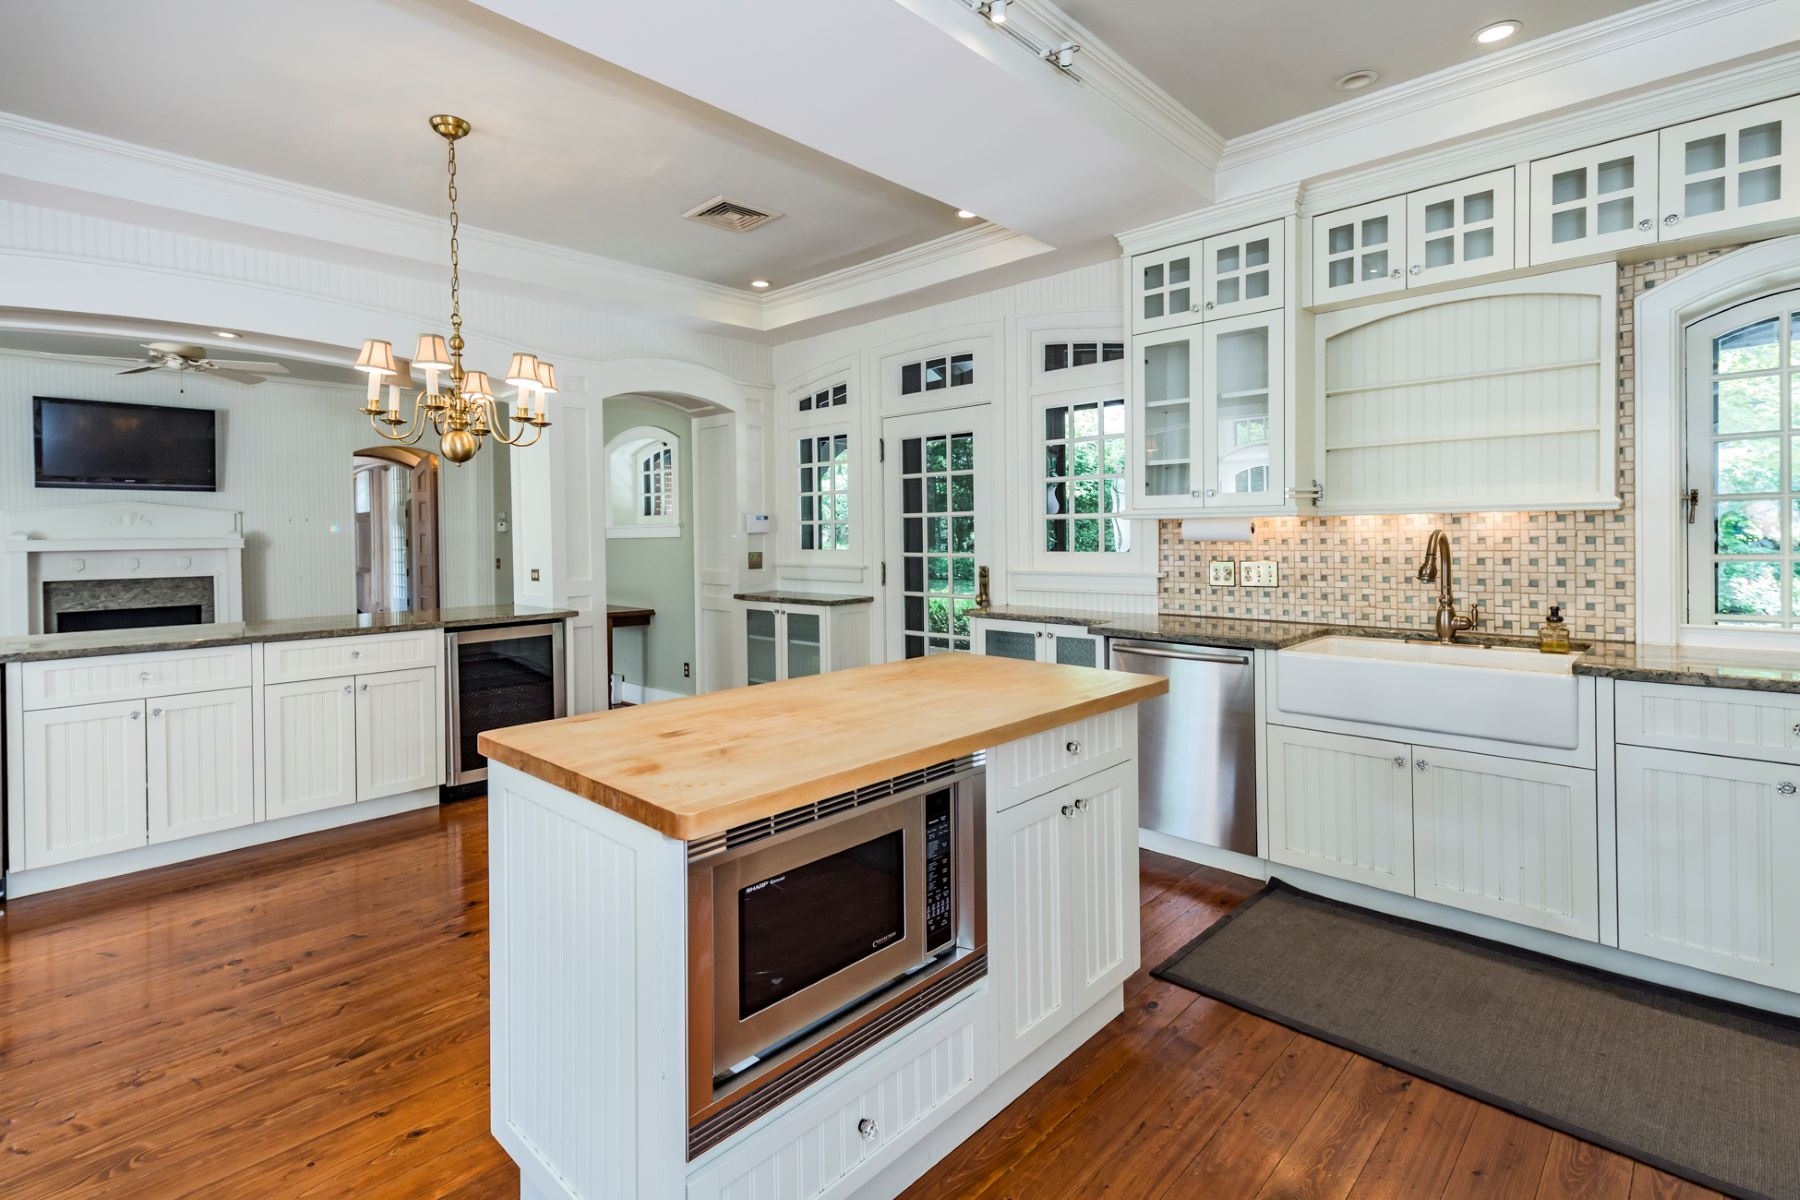 Additional photo for property listing at Historic significance - Restored for the 21st Century 20 Greenhouse Drive, Princeton, Nueva Jersey 08540 Estados Unidos